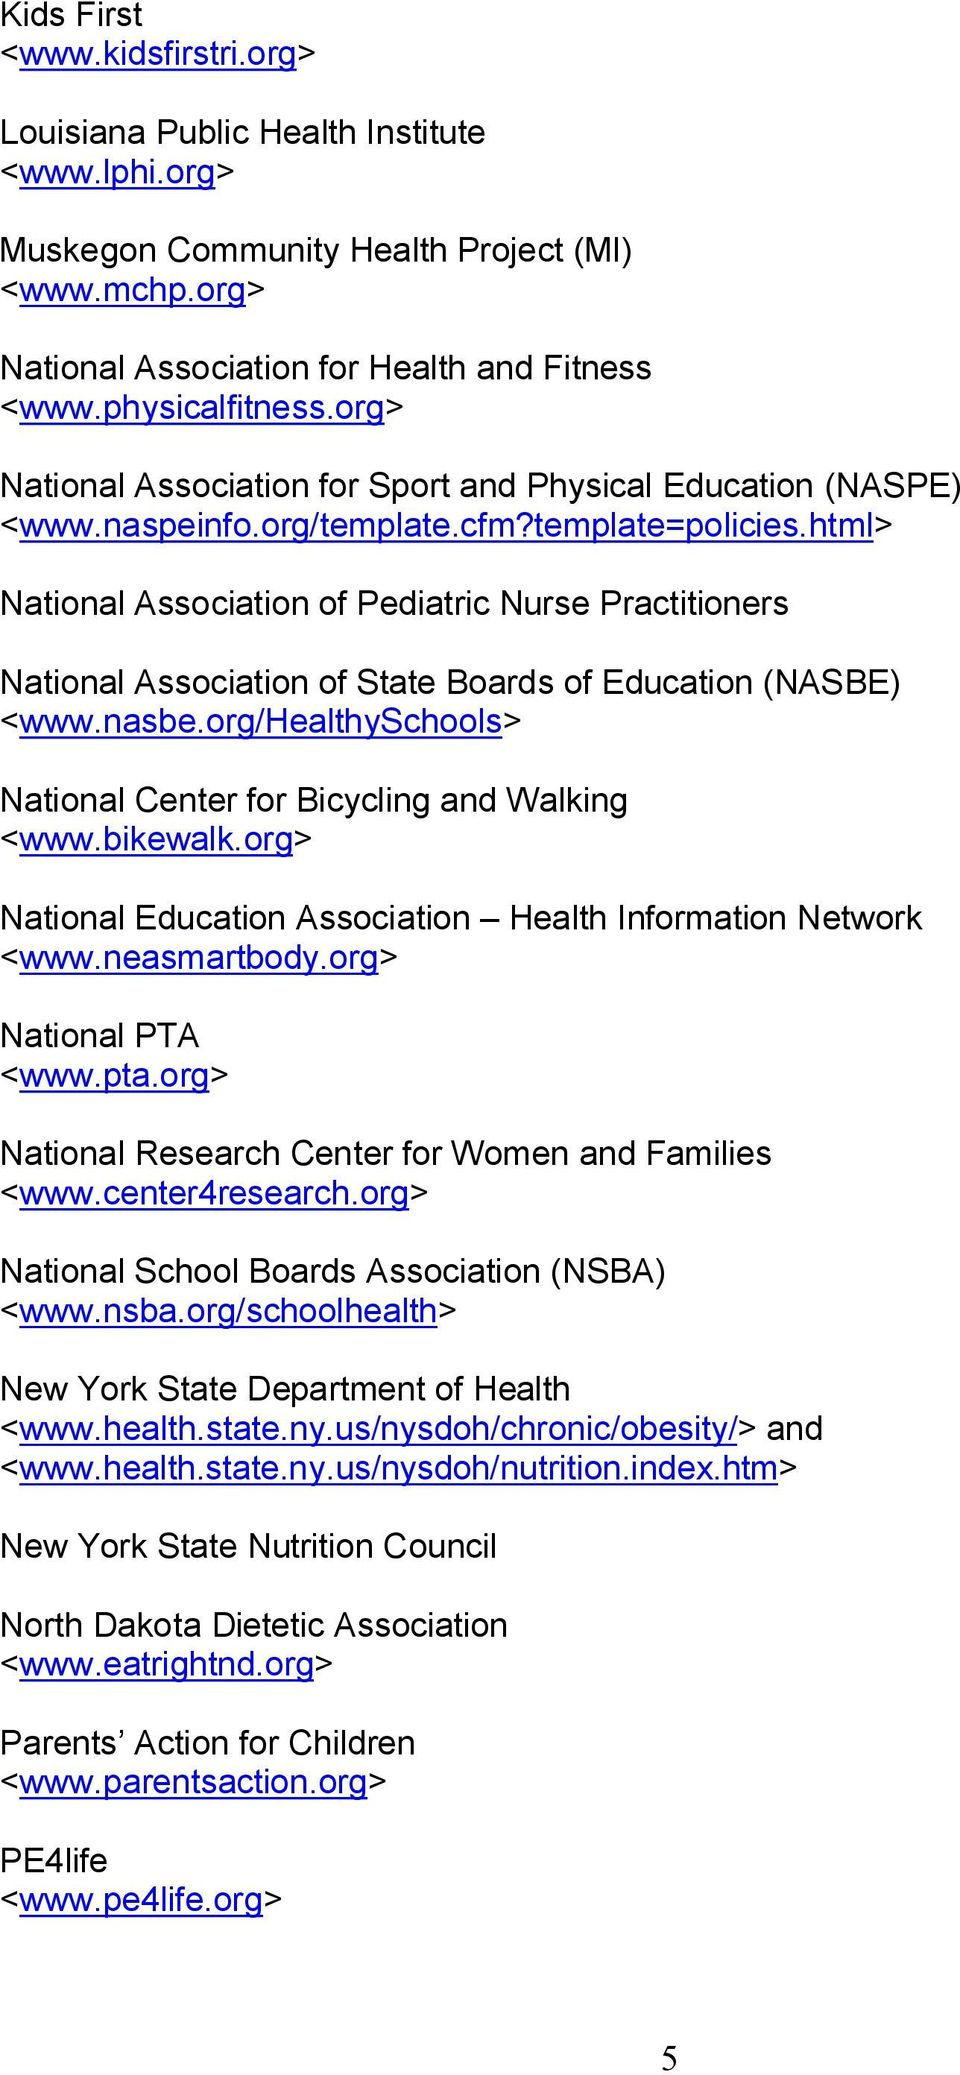 html> National Association of Pediatric Nurse Practitioners National Association of State Boards of Education (NASBE) <www.nasbe.org/healthyschools> National Center for Bicycling and Walking <www.